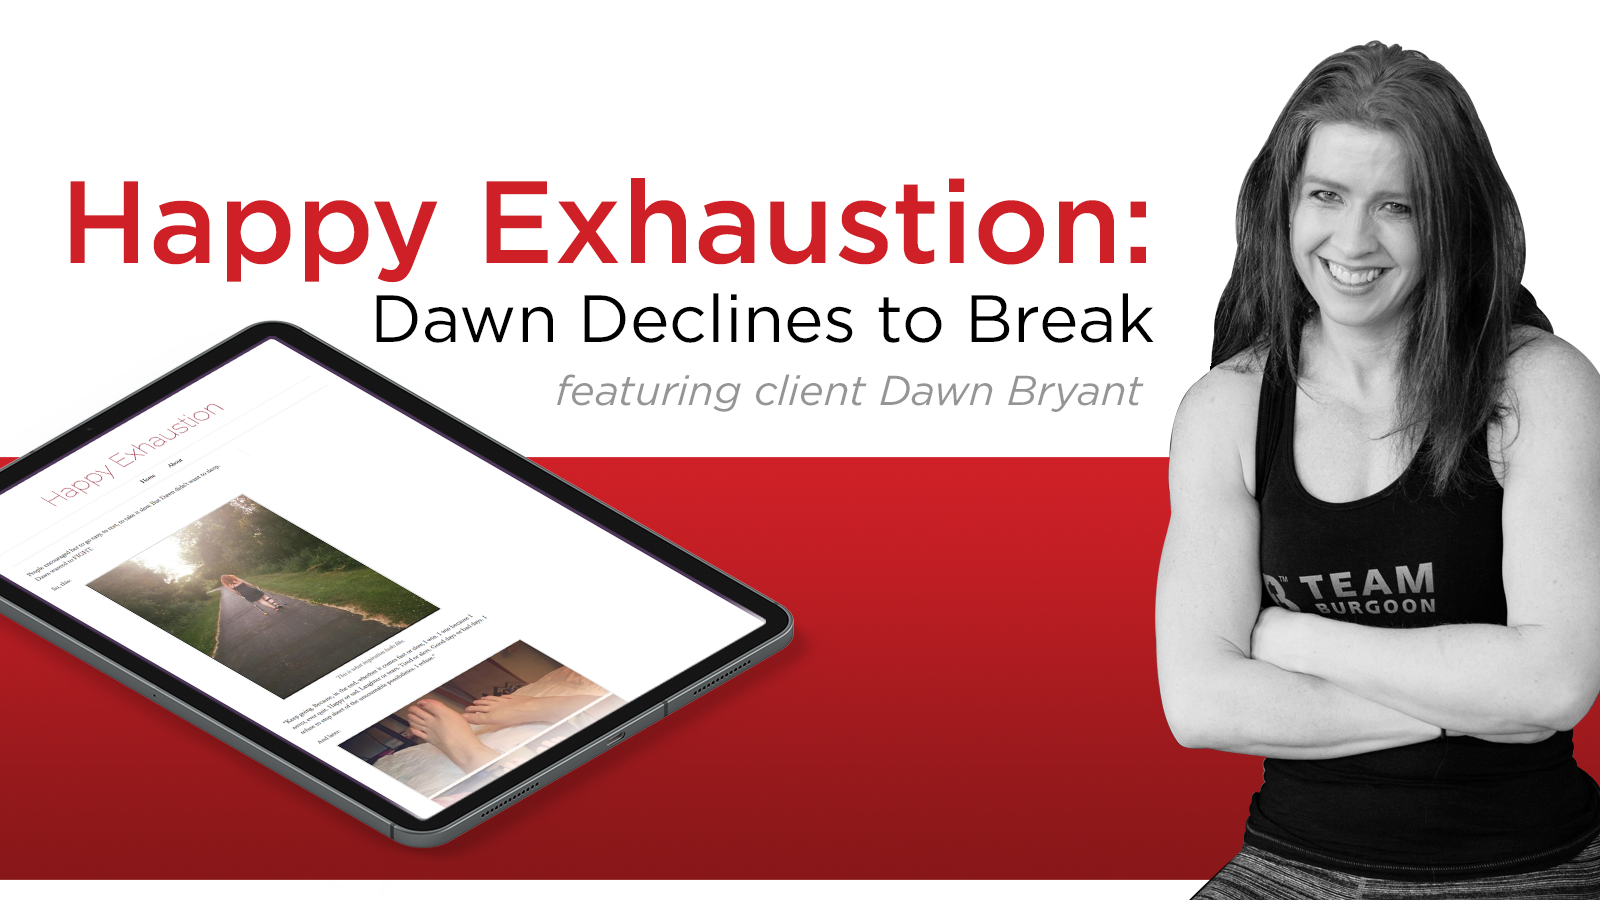 2015-07-28: Happy Exhaustion